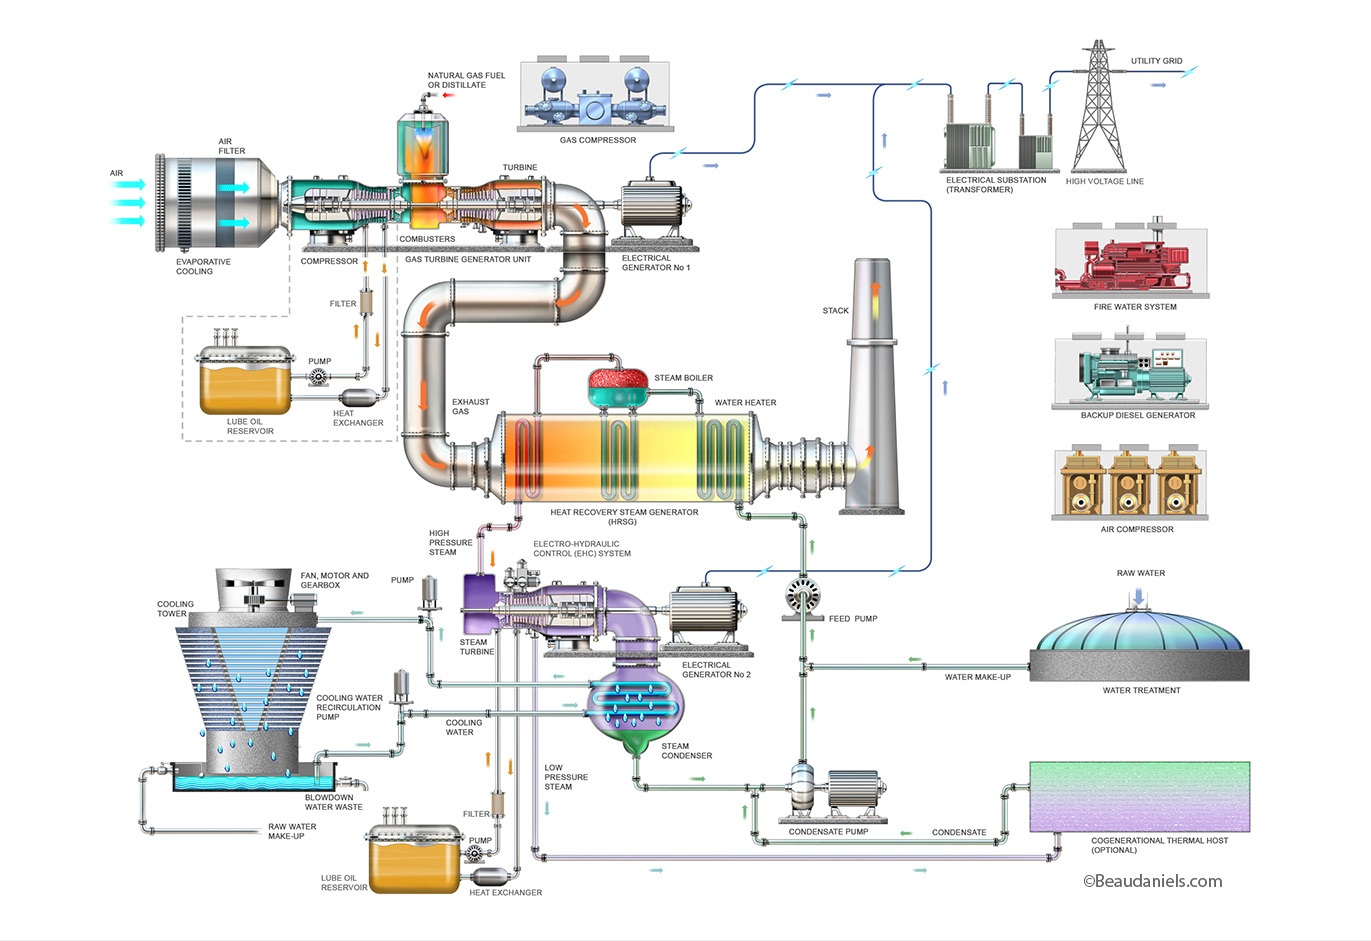 Technical Illustration Beau And Alan Daniels Energy Industry Gas Power Plant Diagram Turbine Infographic